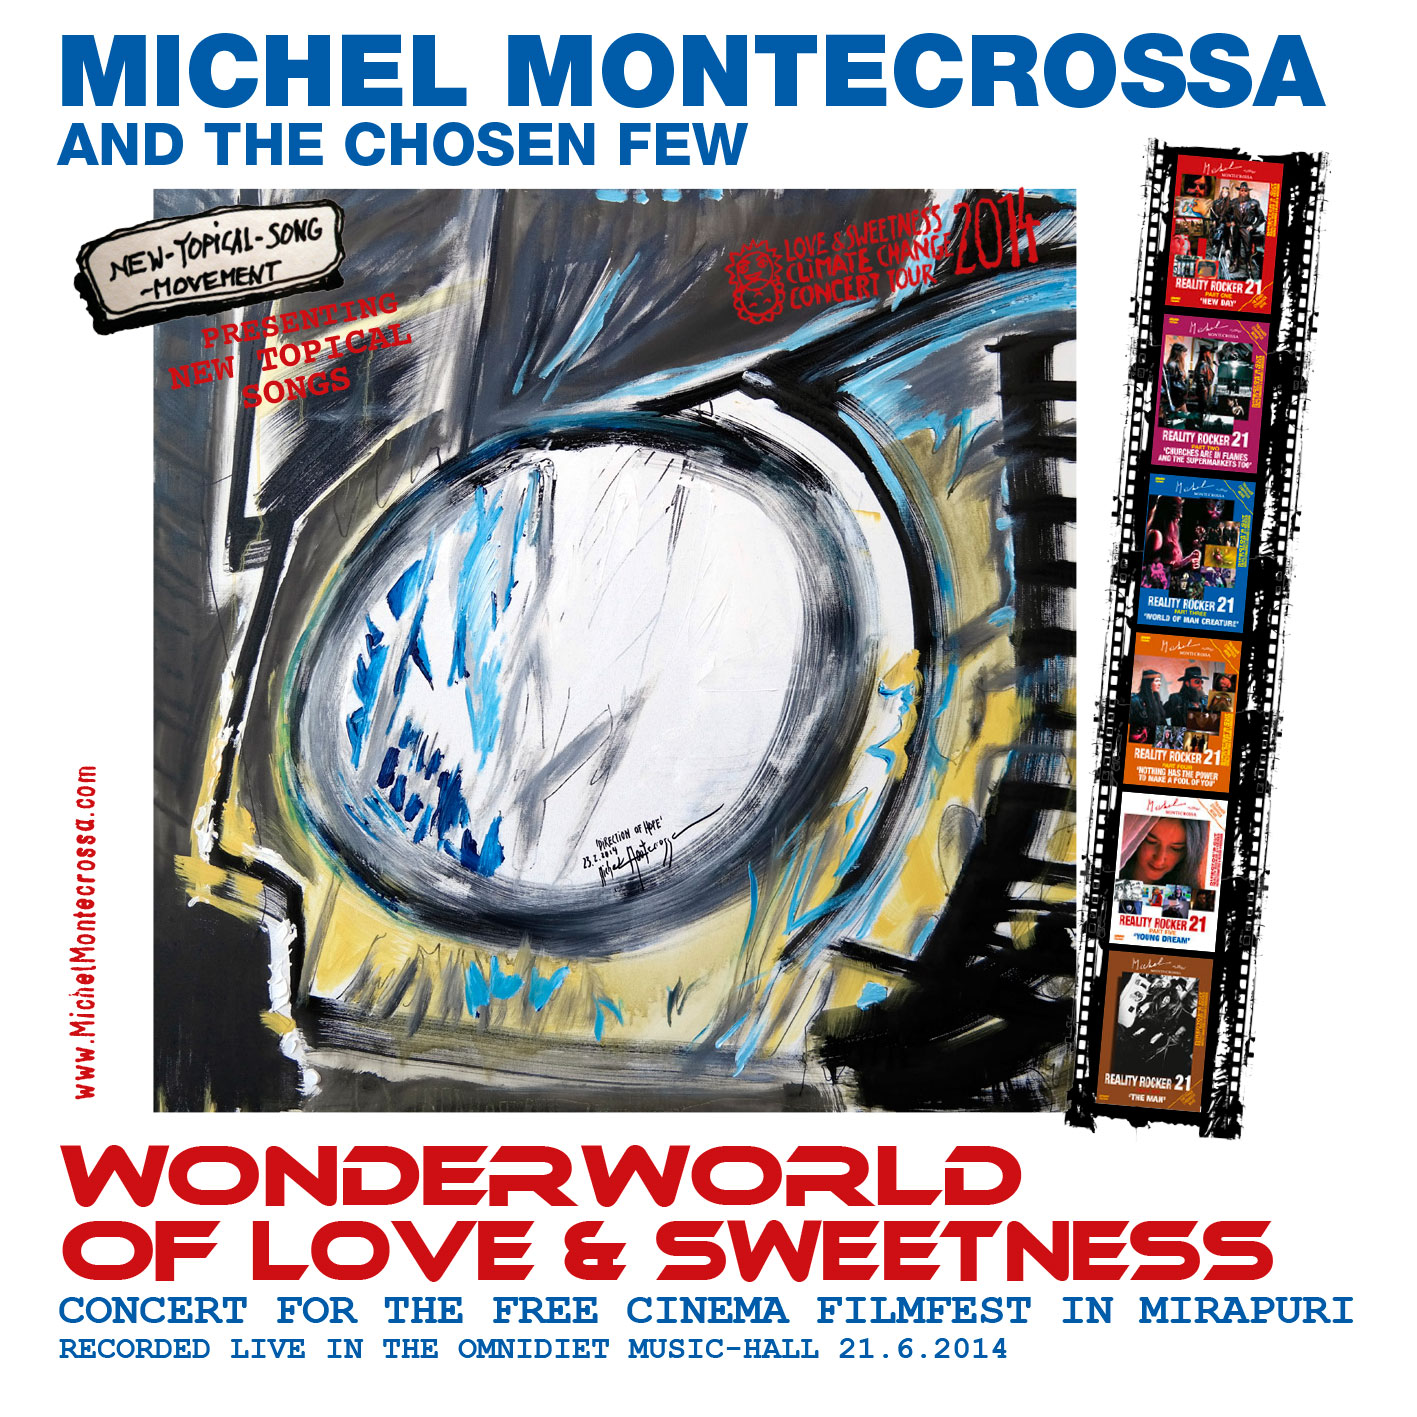 Wonderworld Of Love & Sweetness